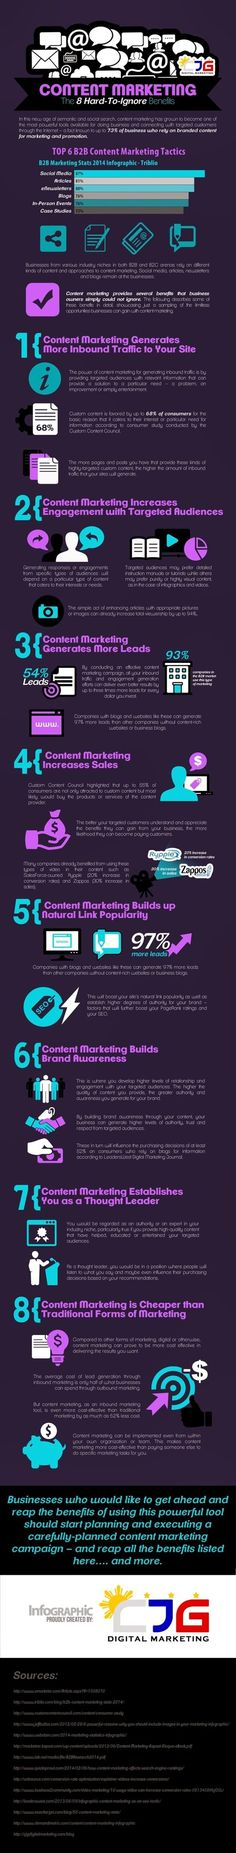 Infographic: 8 Hard-to-ignore Content Marketing Benefits #infographic #contentstrategy